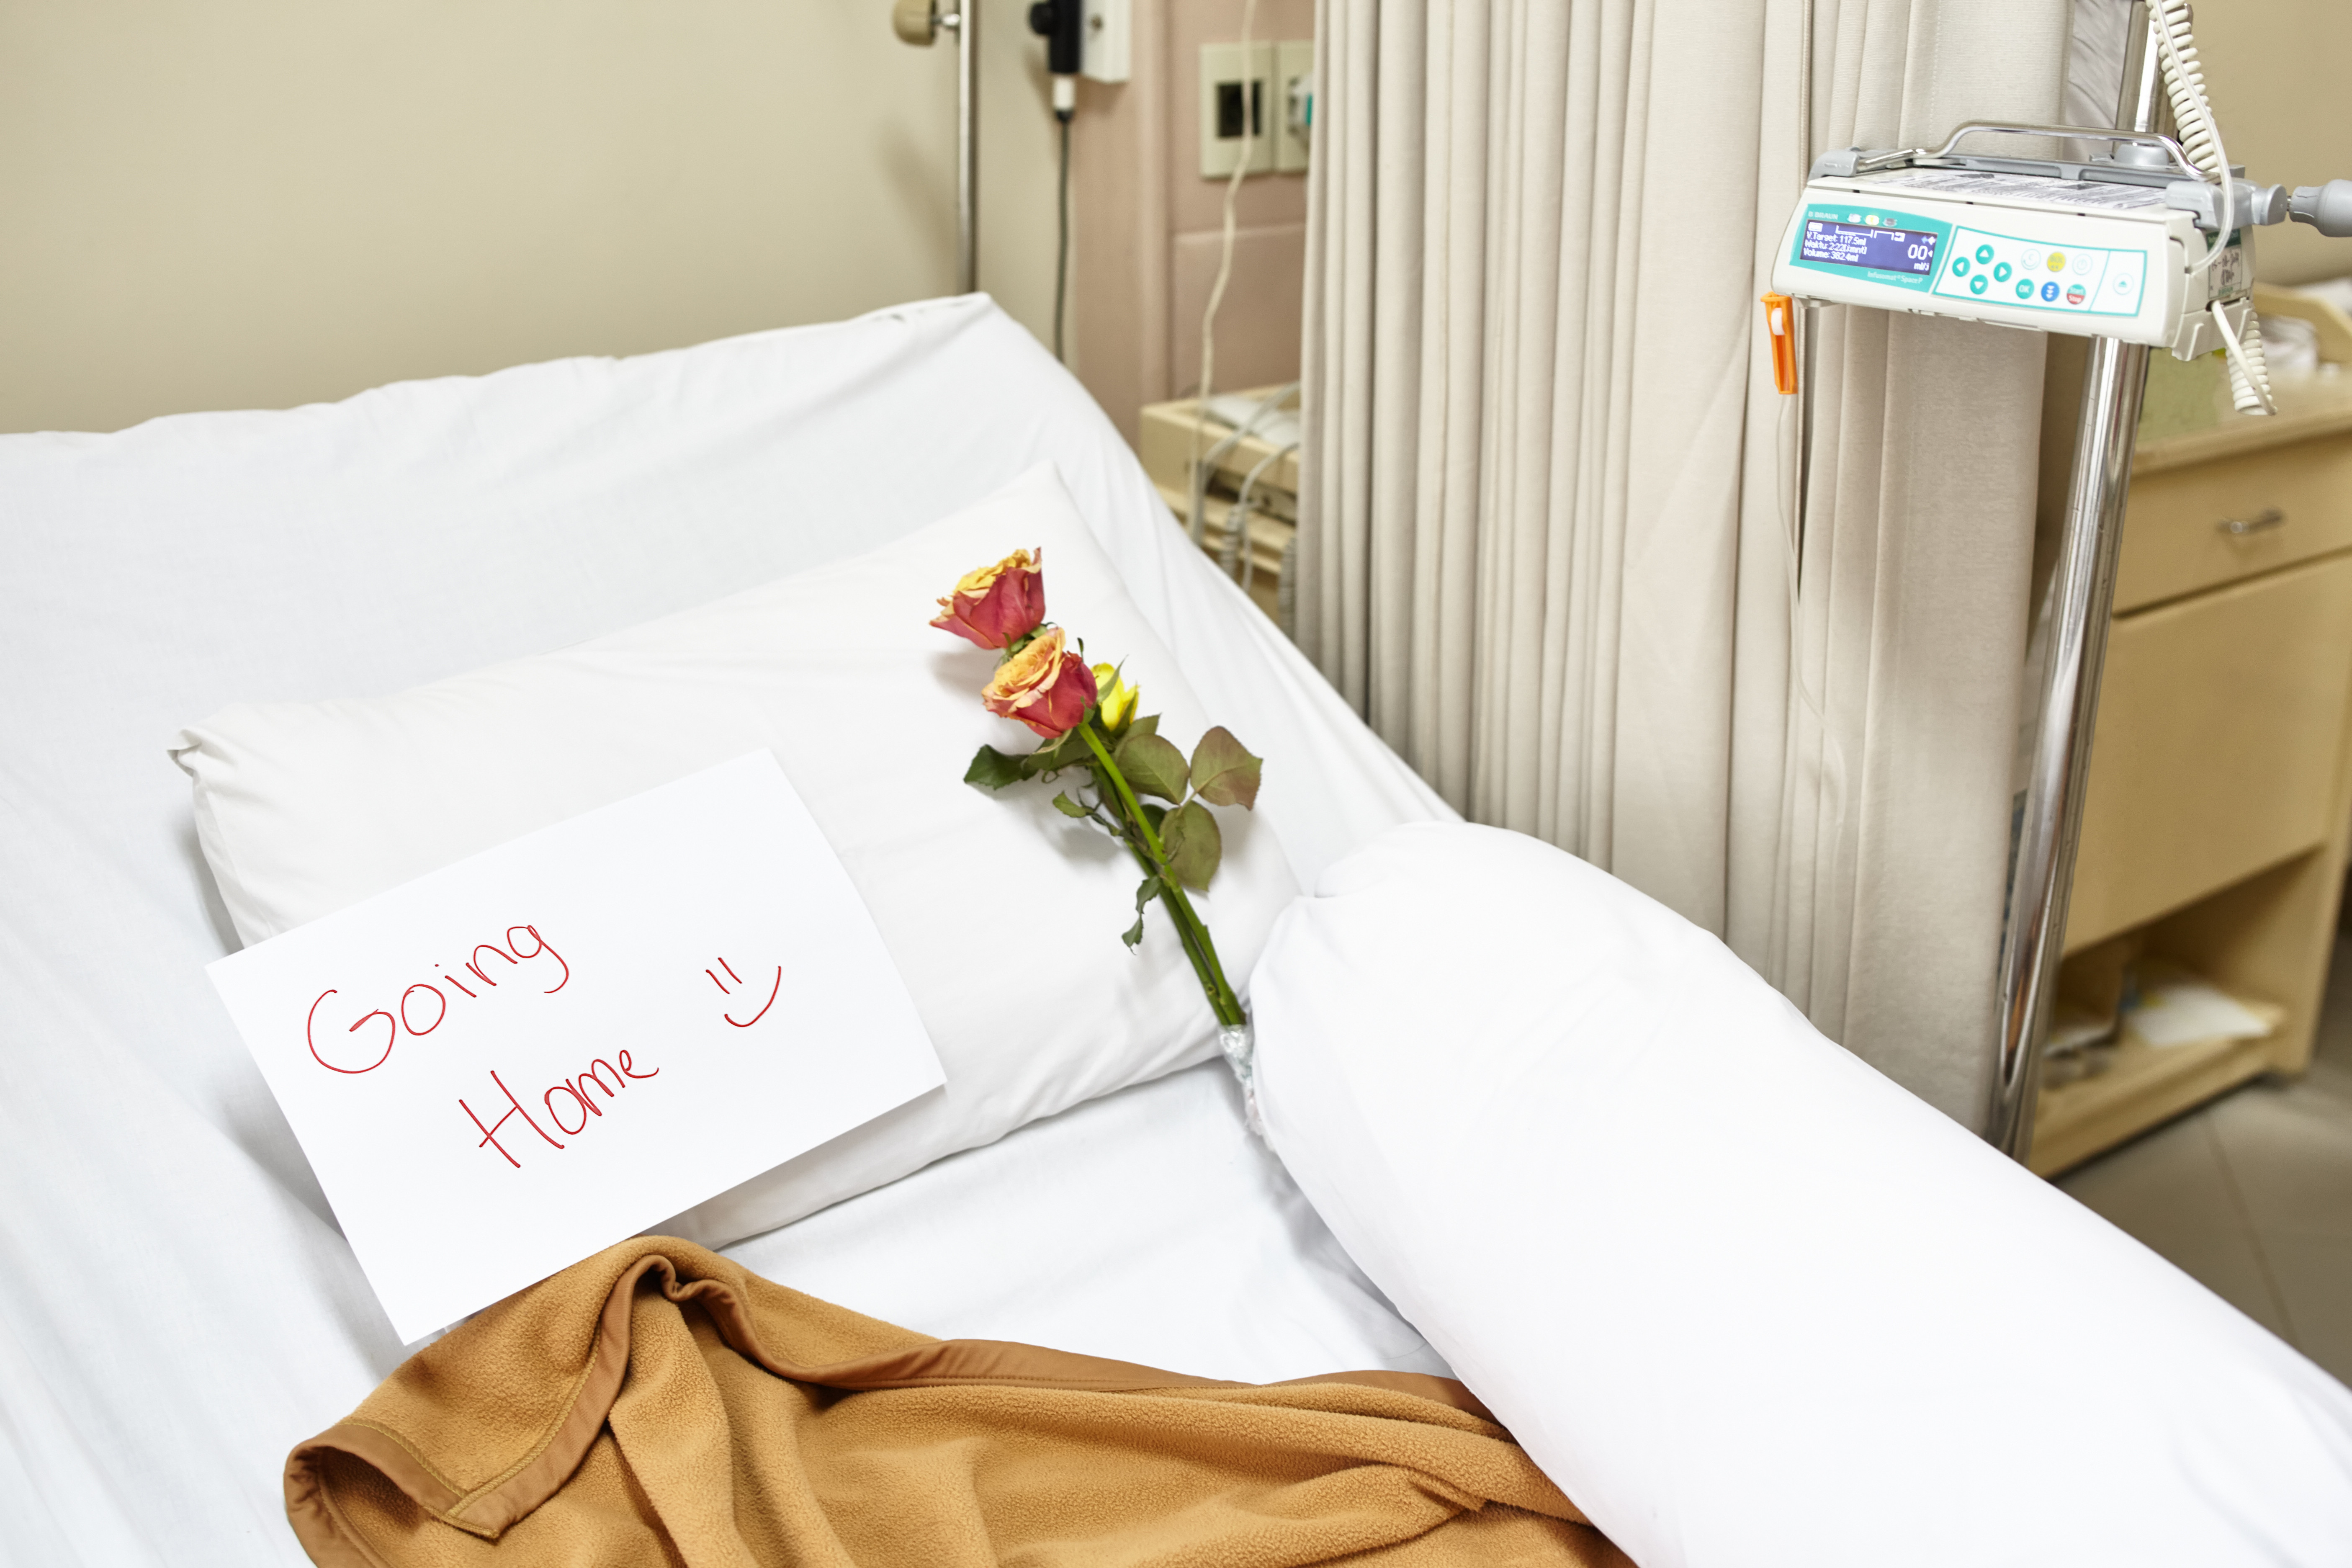 hospital bed note on it says going home